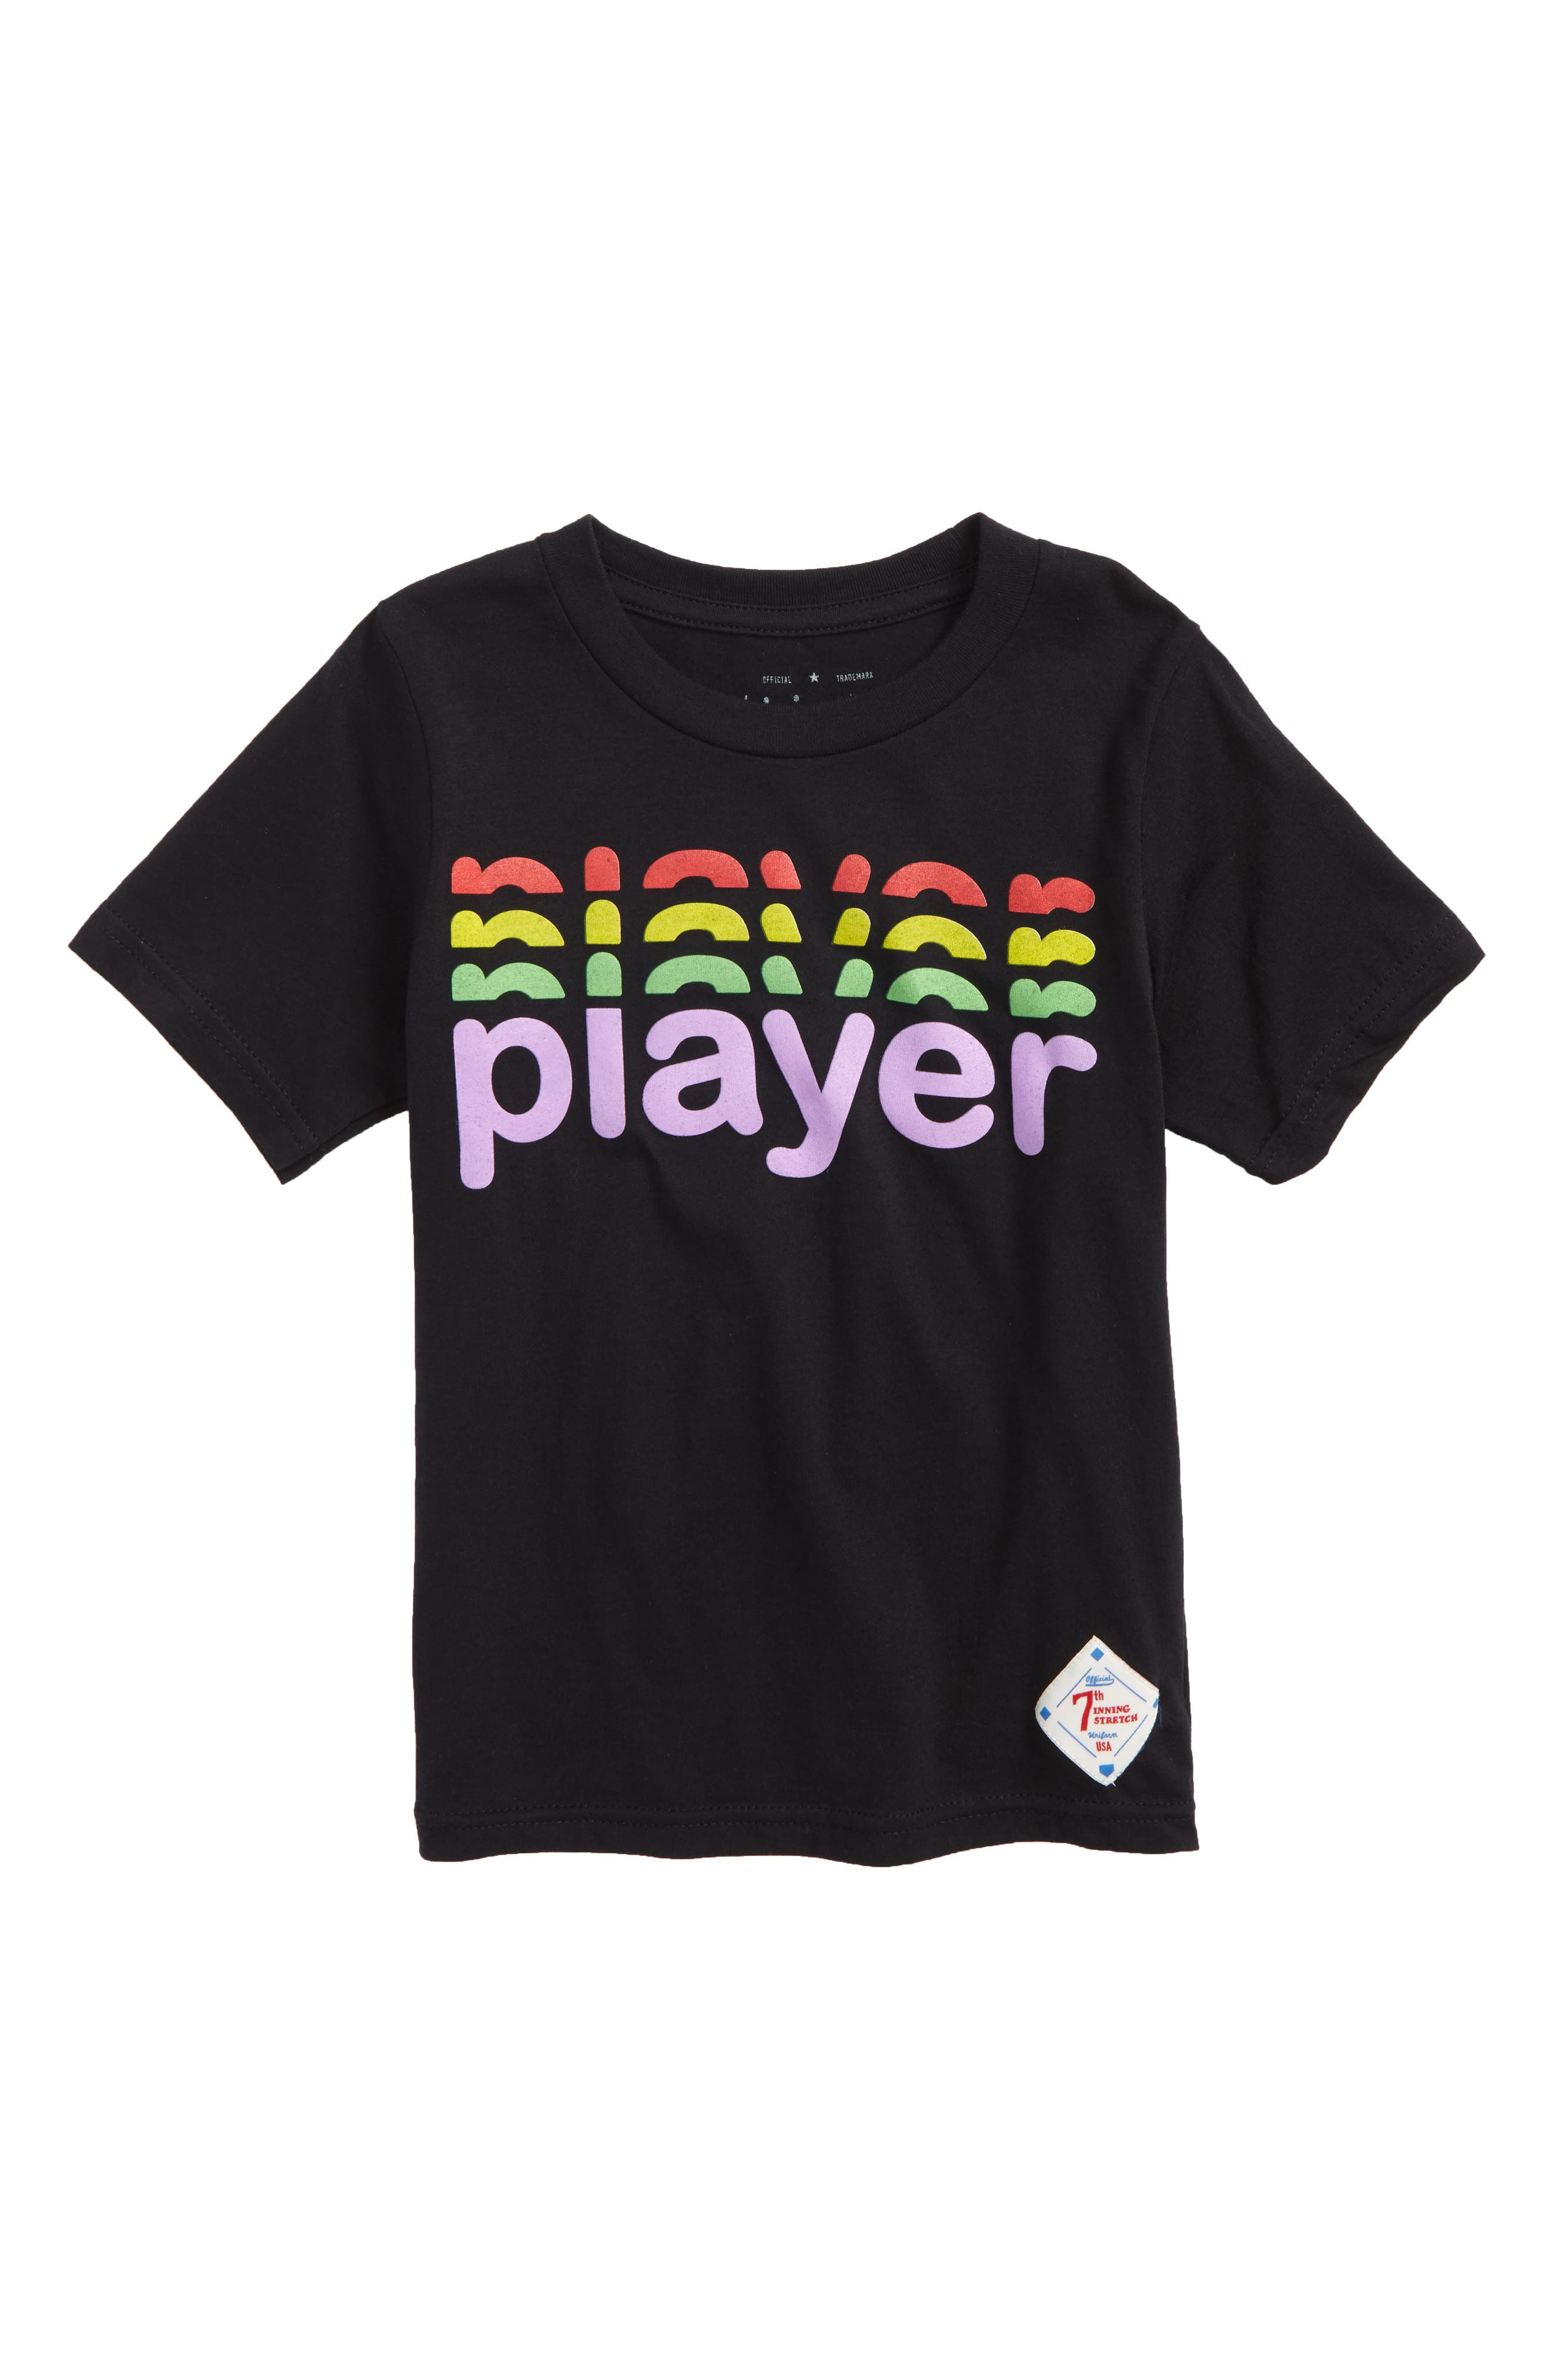 Player Graphic T-Shirt,                         Main,                         color, Black